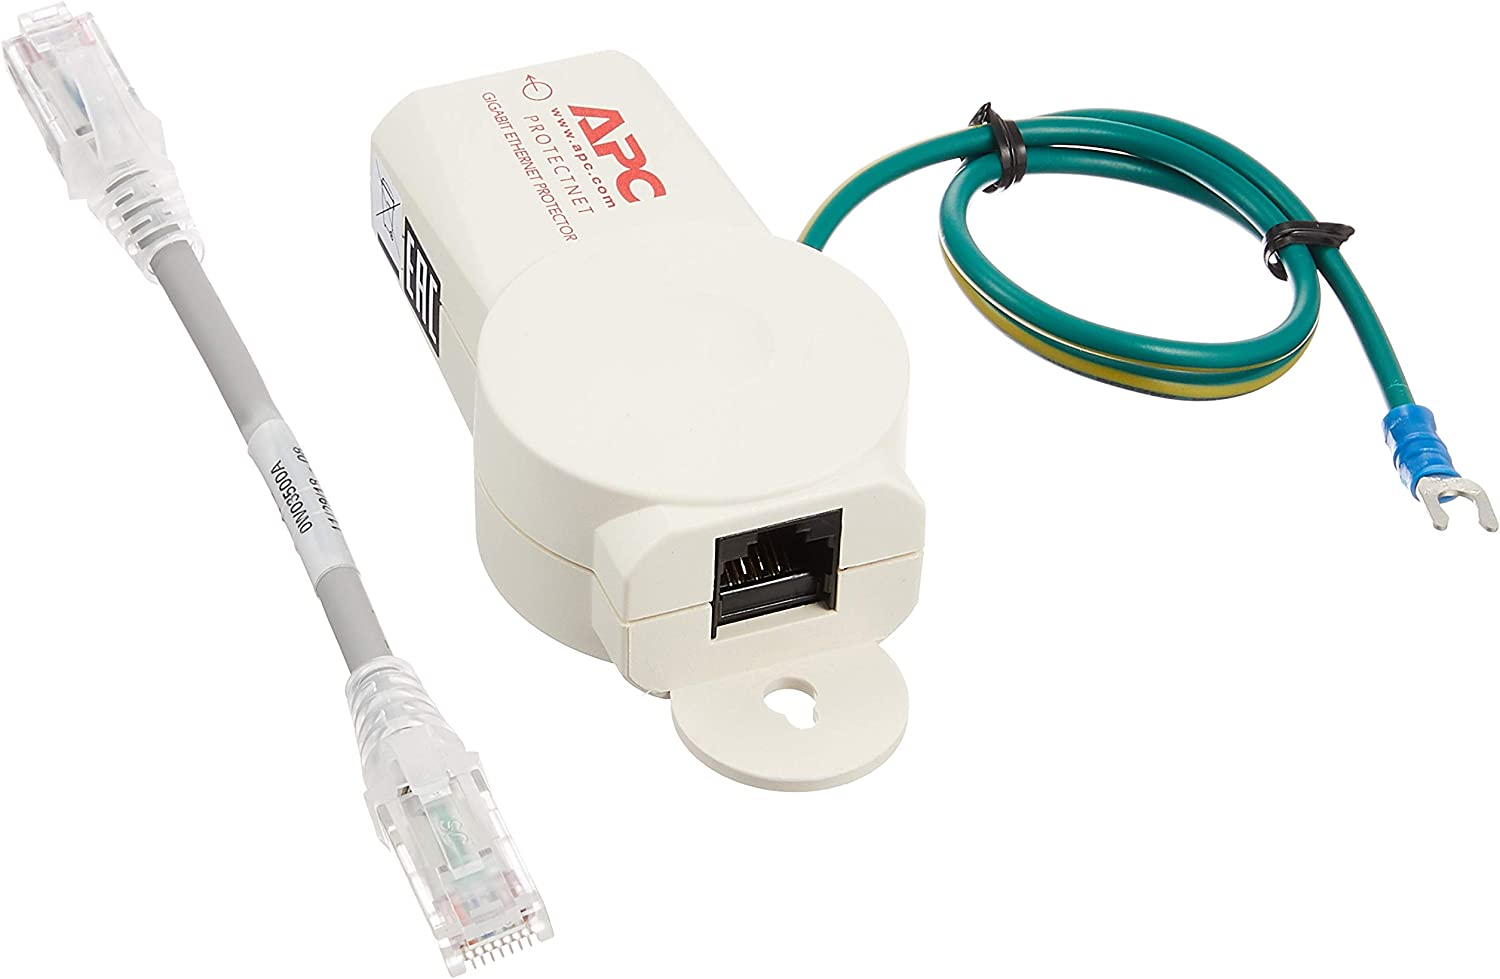 APC Surge Protector for Ethernet Data Port ProtectNet